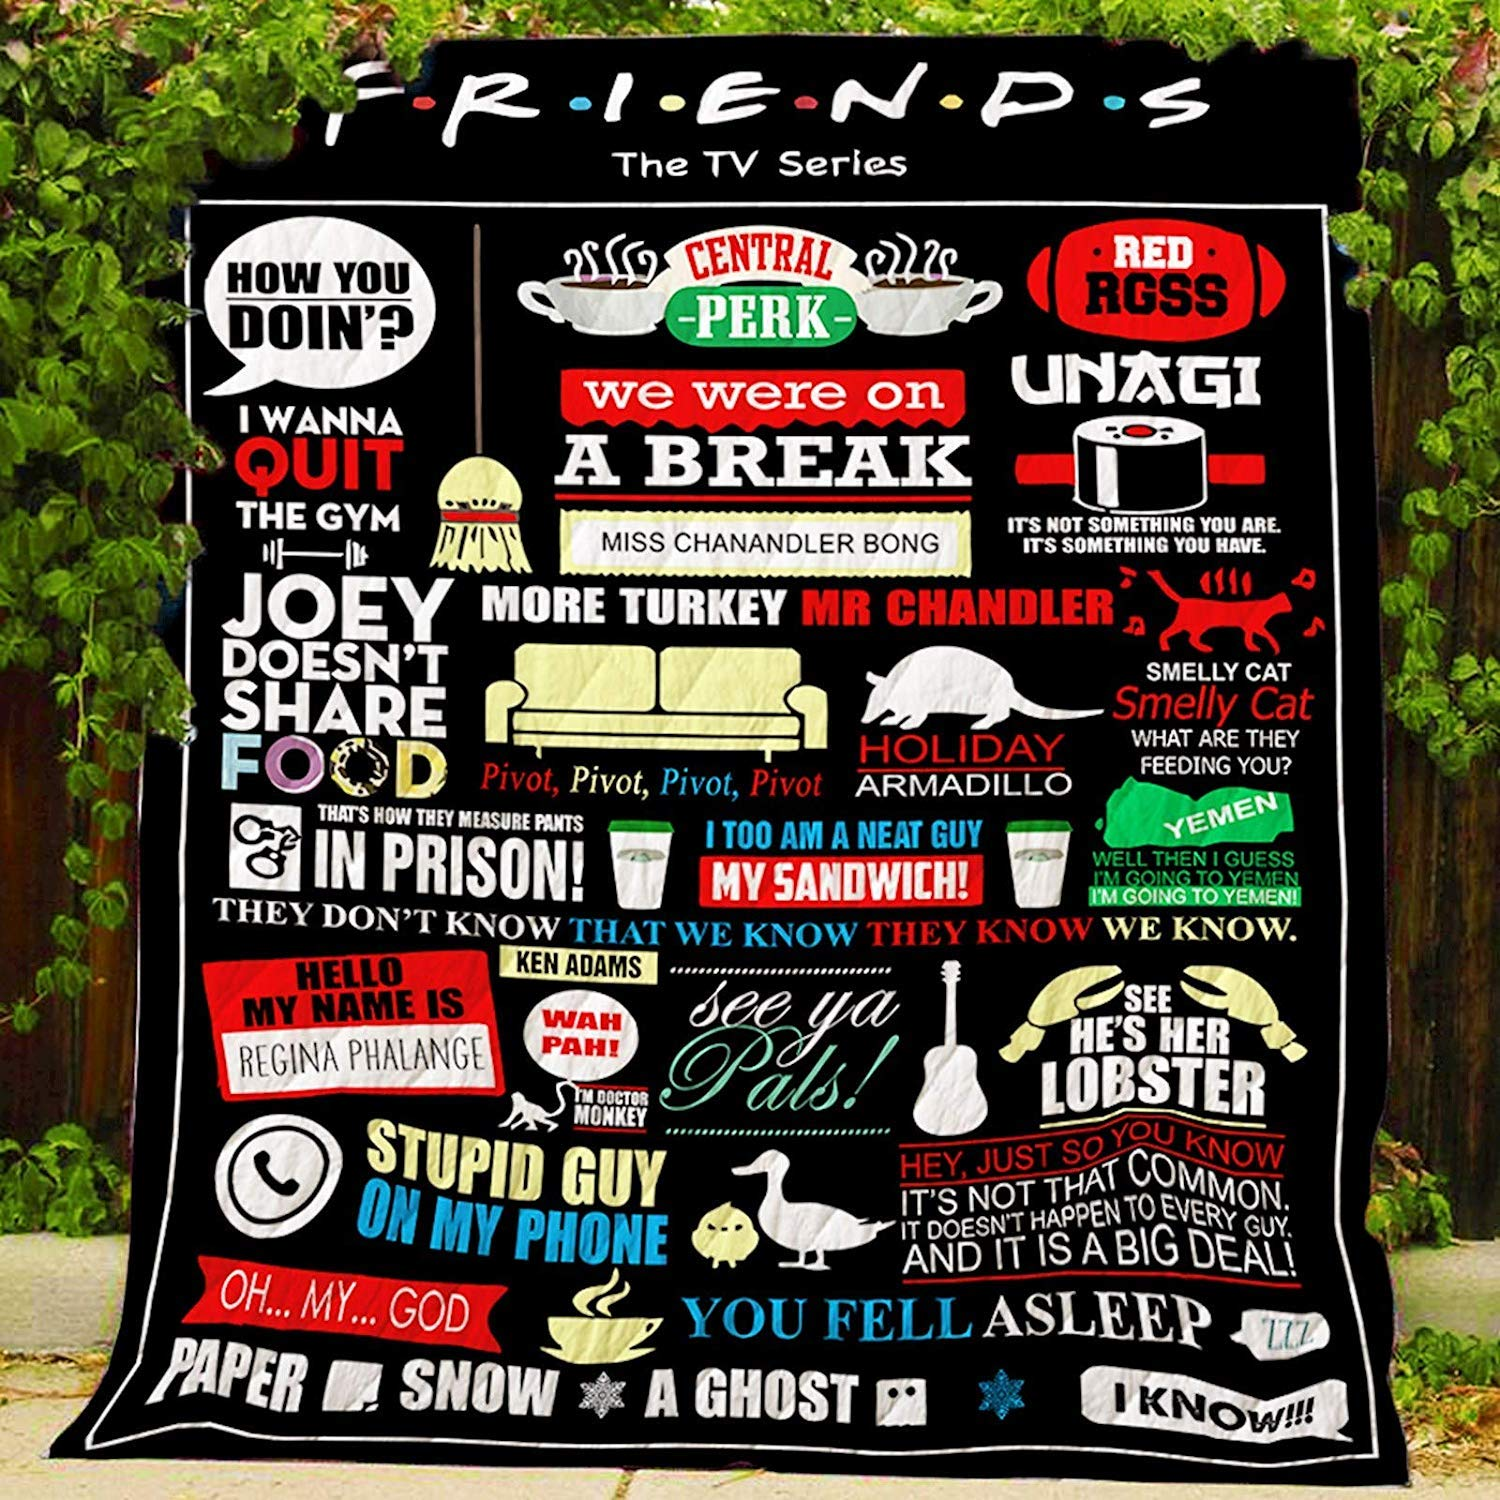 3D Printed Quilt | F.R.I.E.N.D.S TV Series Camping Quilt | All-Season Quilts Comforters with Reversible Cotton | Blanket for Traveling, Picnics, Beach Trips, Concerts and Home